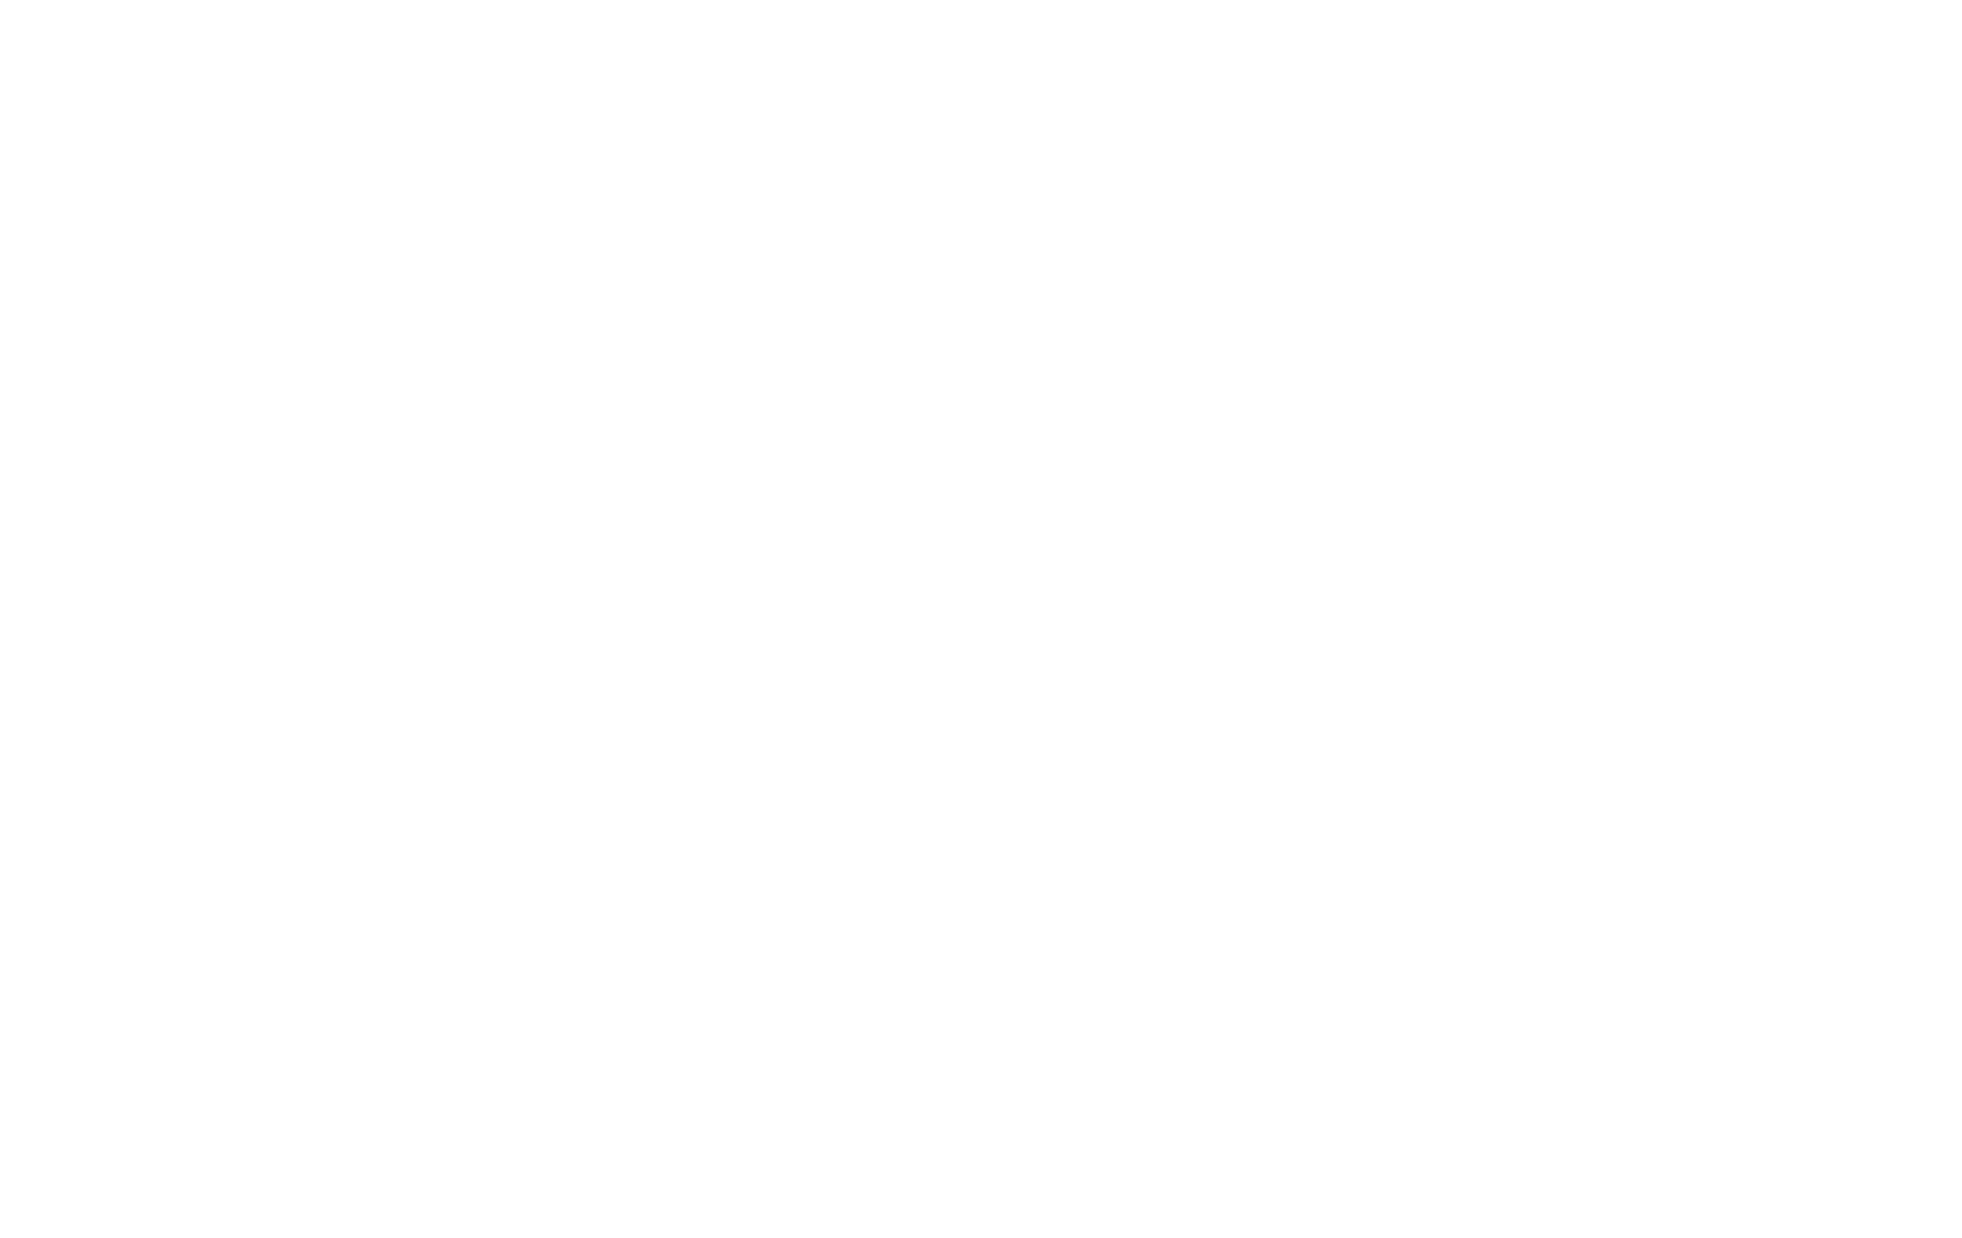 1 marie claire.png